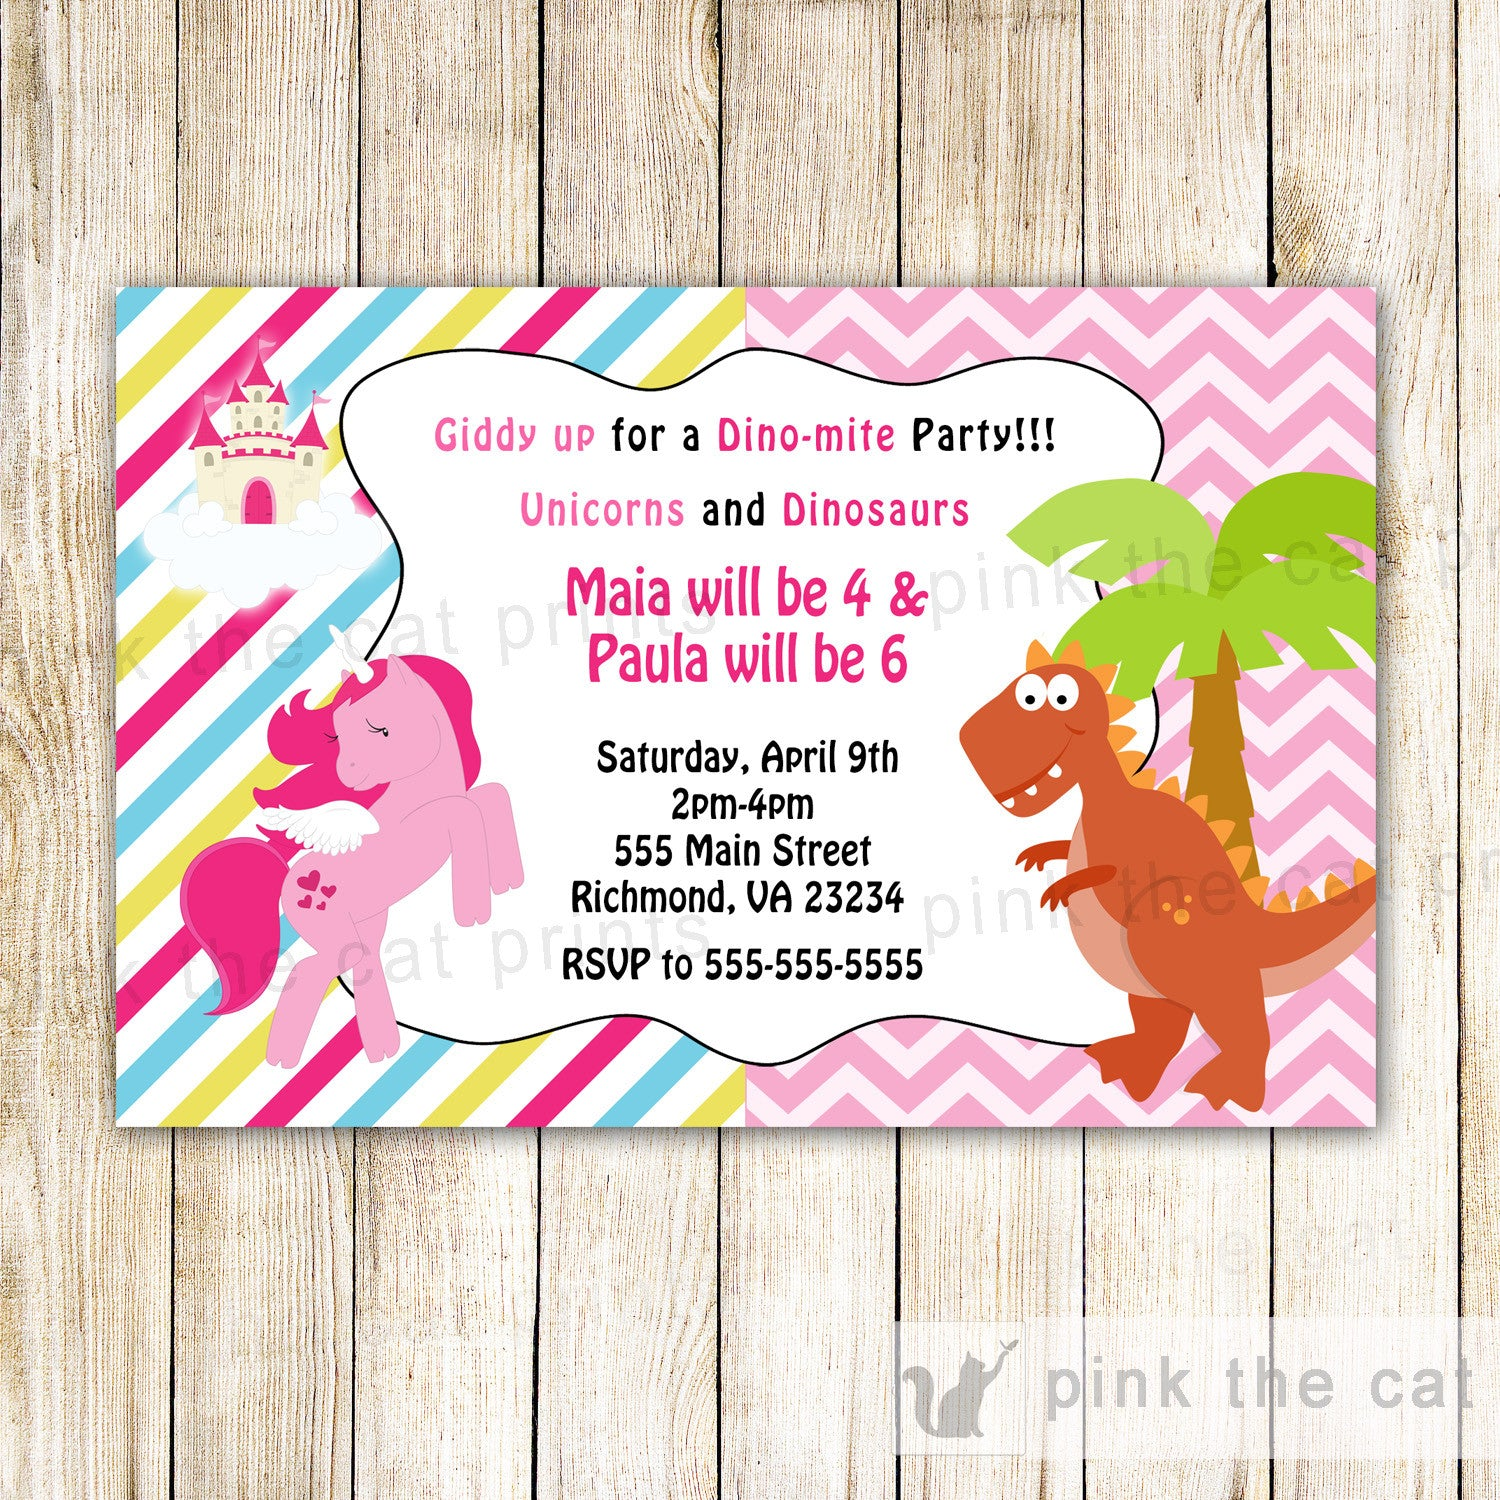 Unicorn Dinosaur Invitation Kids Birthday Party Pink The Cat